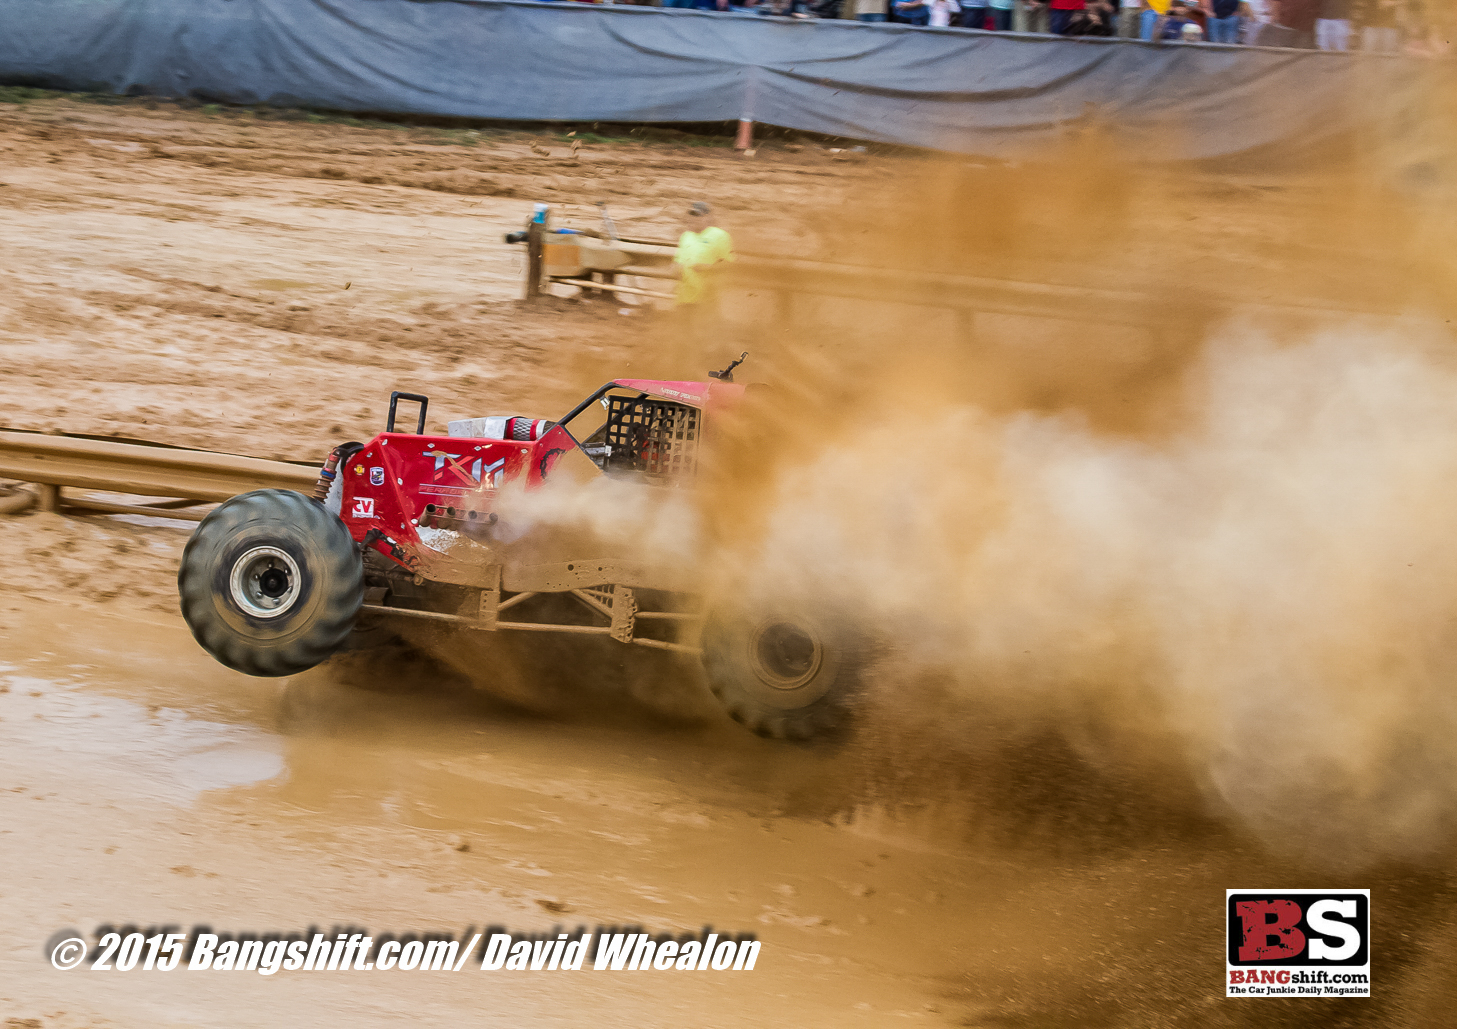 Fastest of the fast mud bog race for Finnicum motors lee county